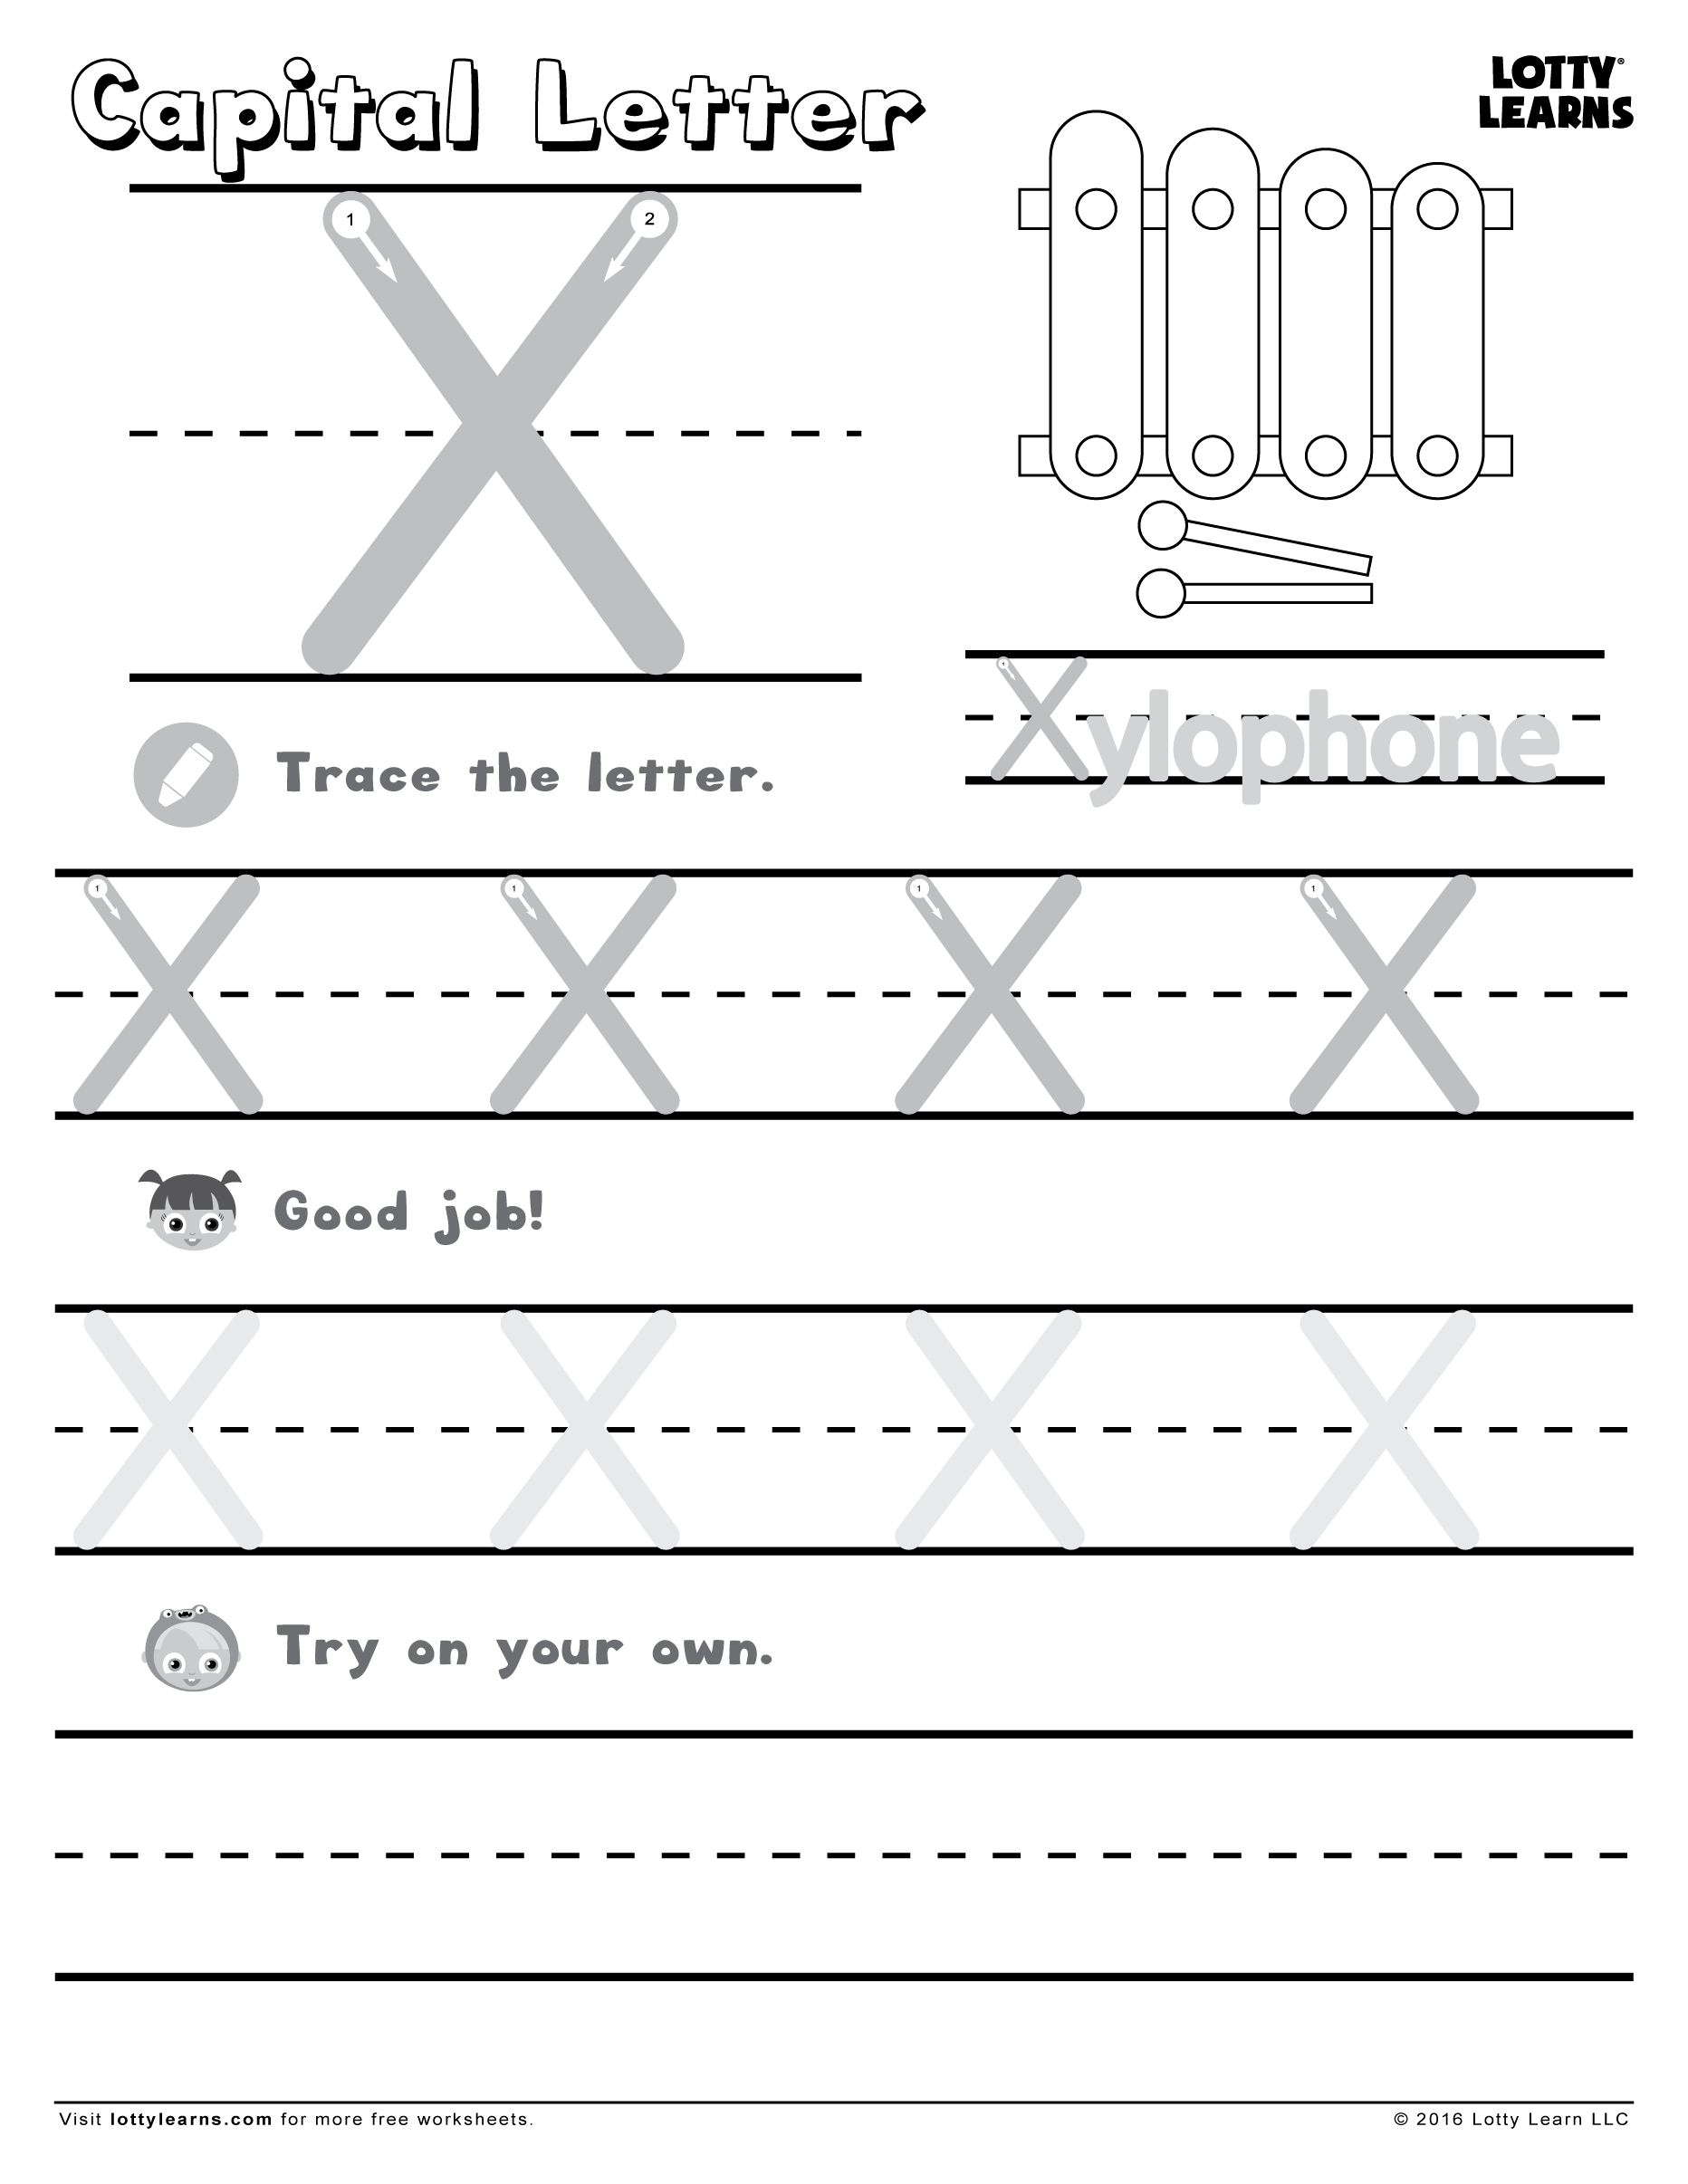 Capital Letter X Lotty Learns – Capital Letter Worksheets for Kindergarten